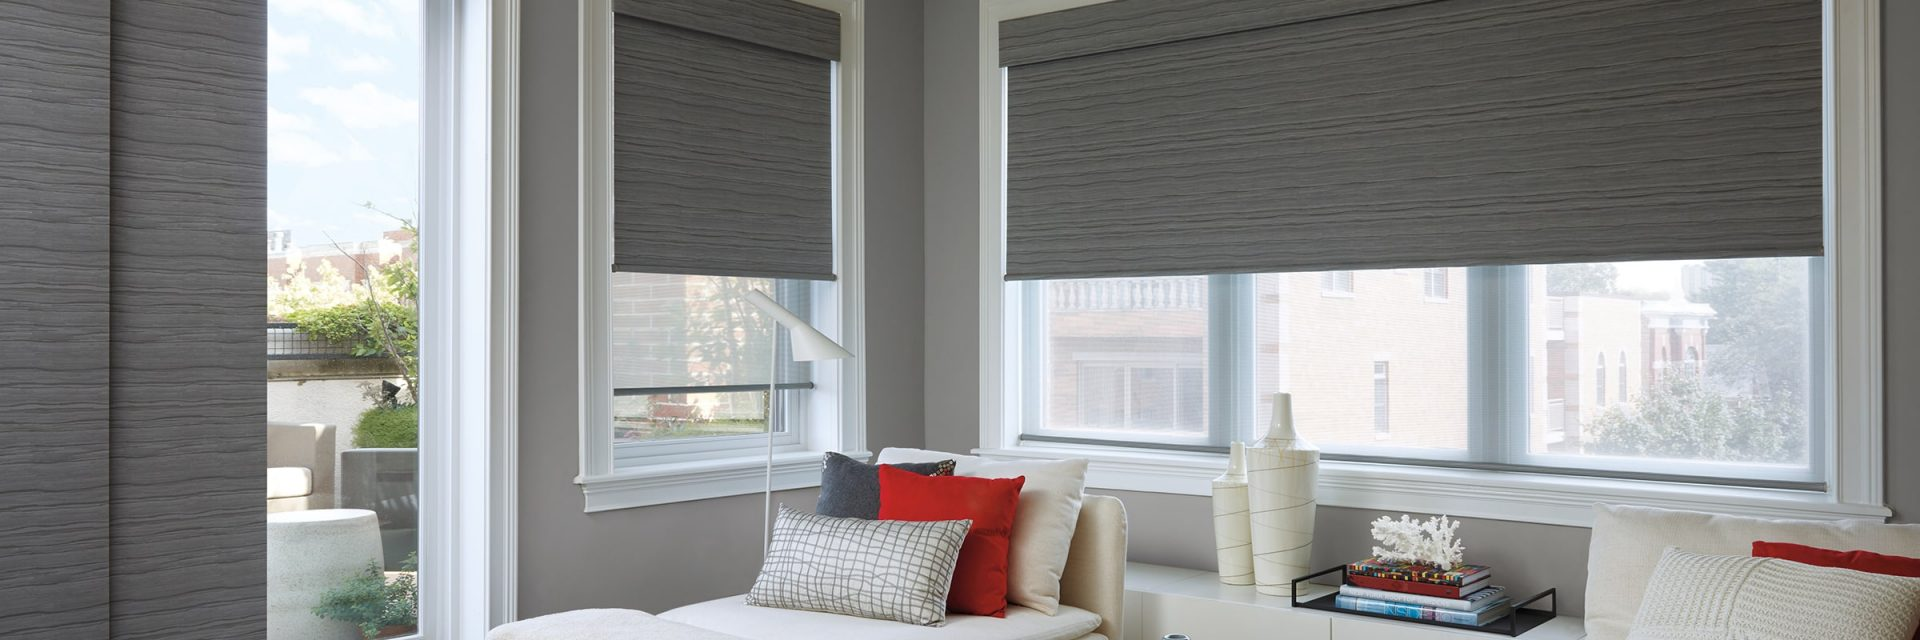 Roller Blinds Singapore